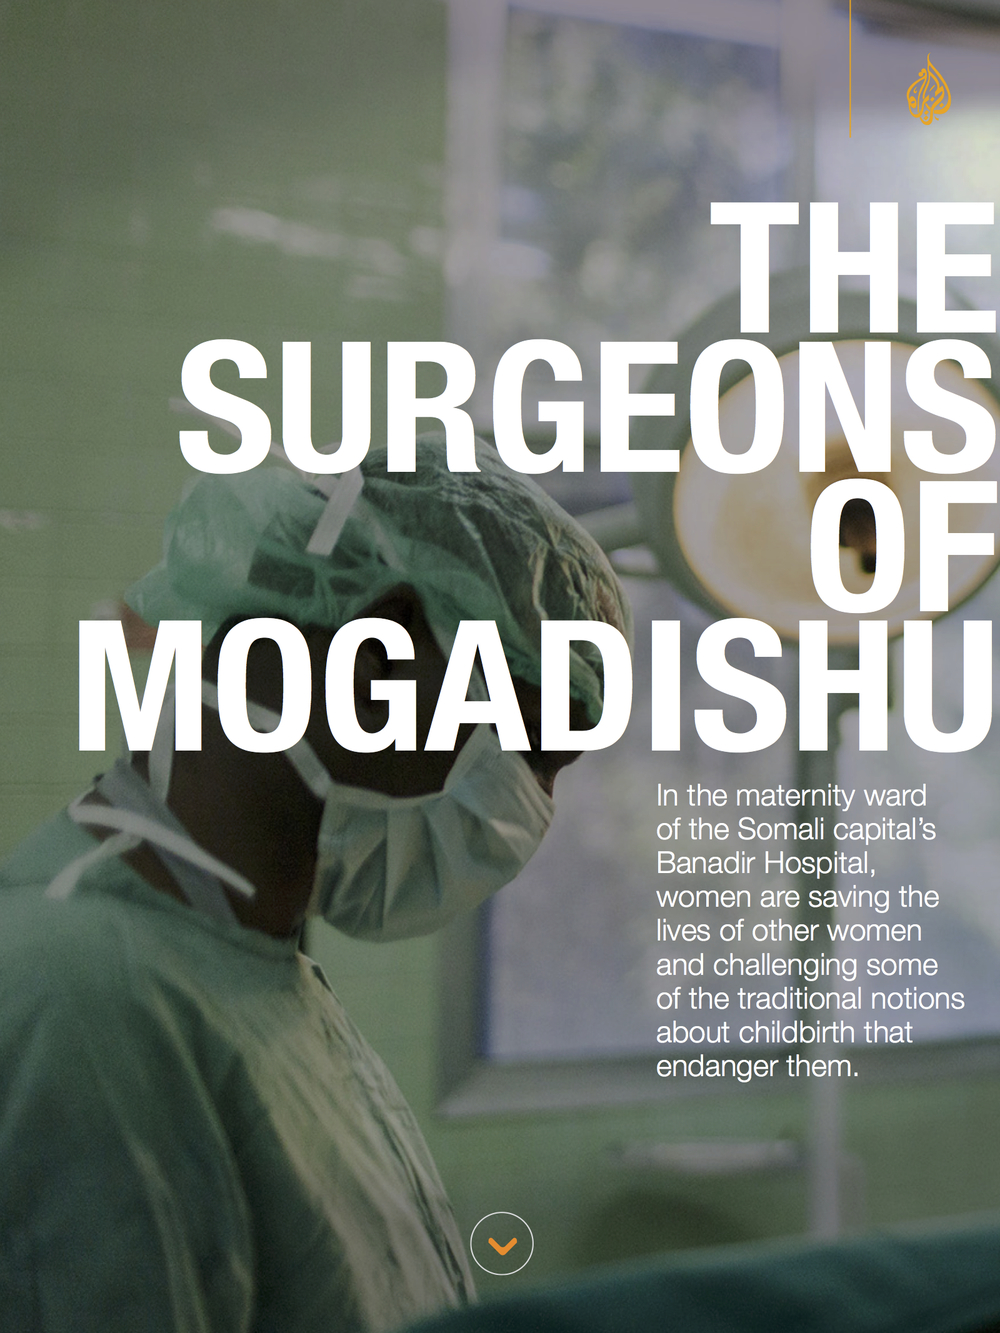 THE SURGEONS OF MOGADISHU 01.jpg